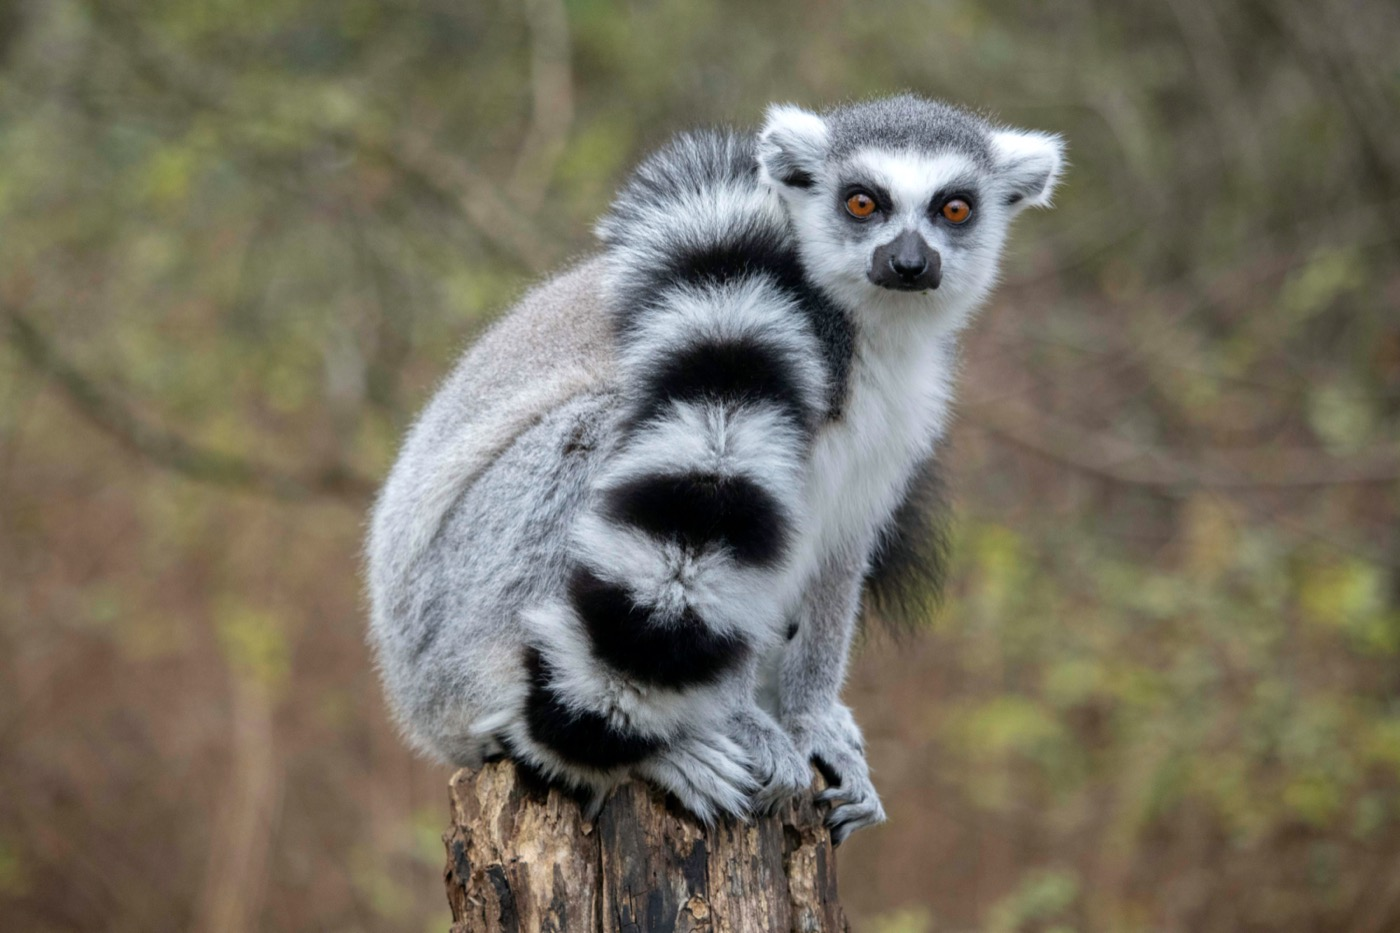 lemur sitting on a branch with its tail wrapped around itself, looking at camera with wide eyes